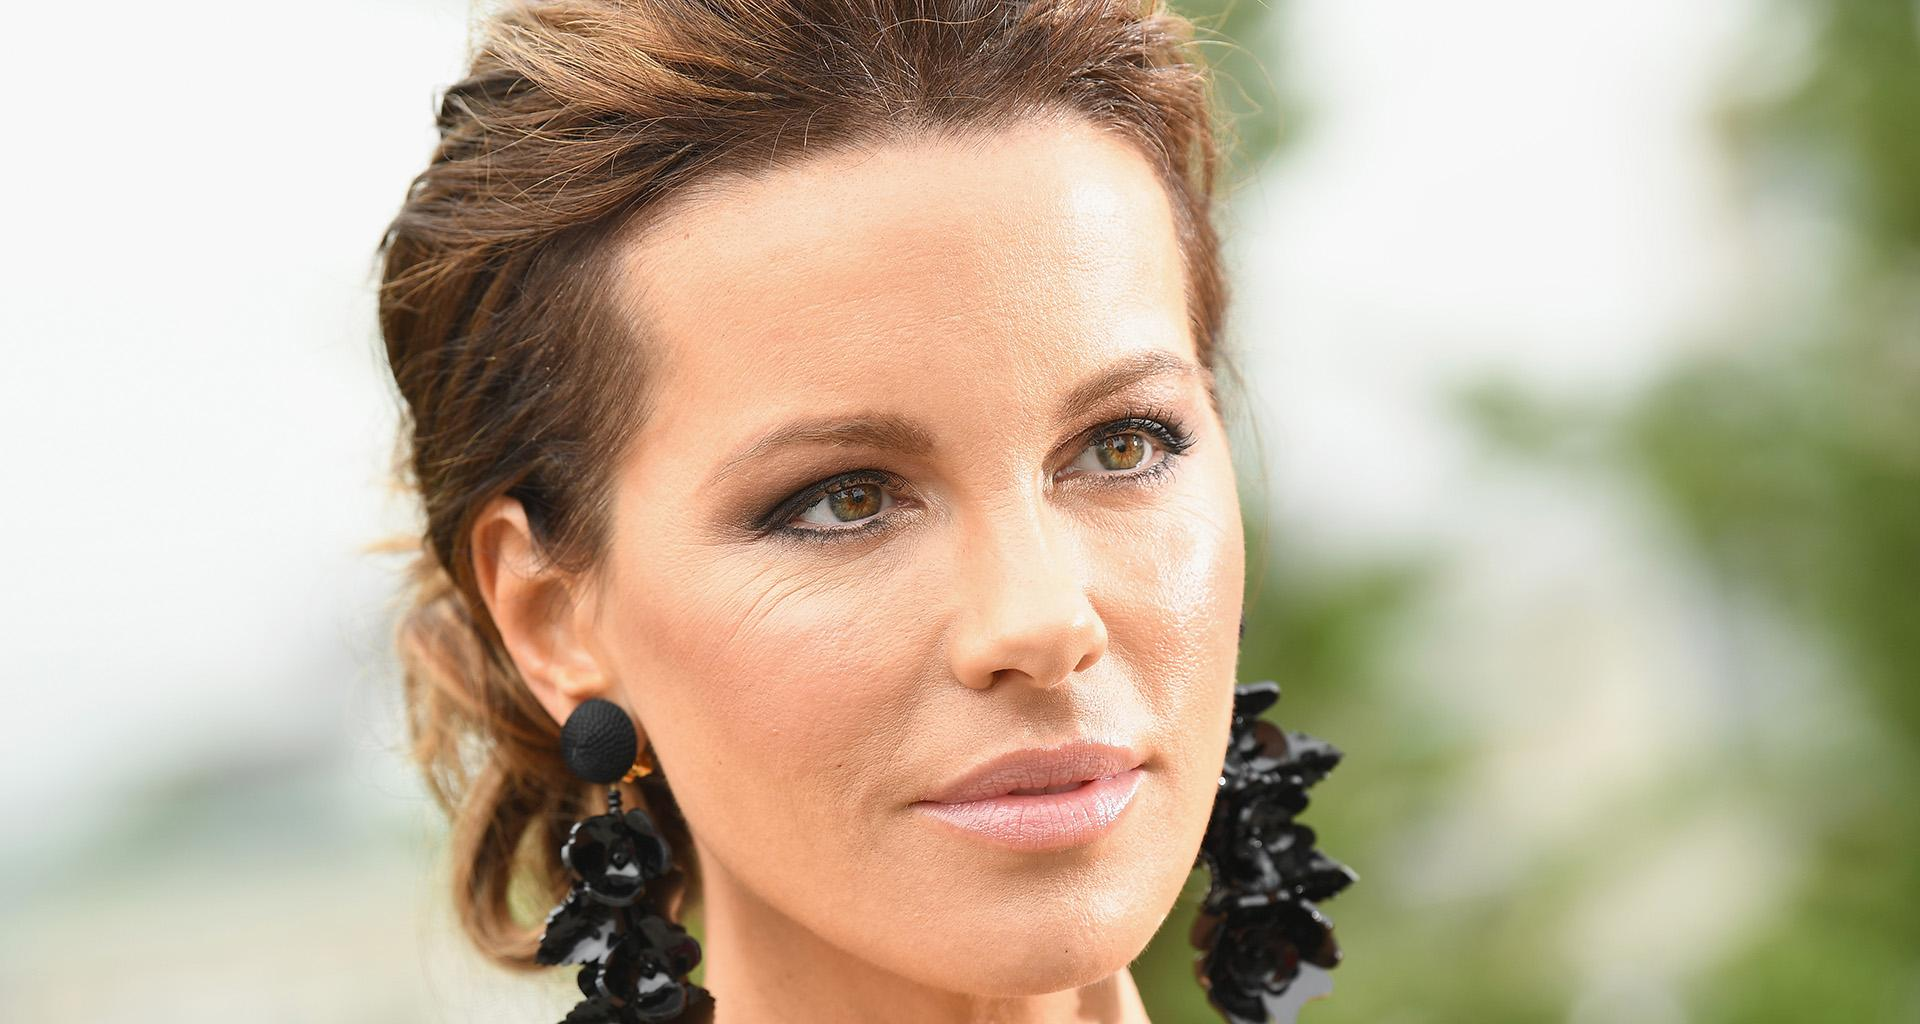 Kate Beckinsale Suffers Painful Ruptured Ovarian Cyst And Shares Teary Pics From Her Hospital Bed